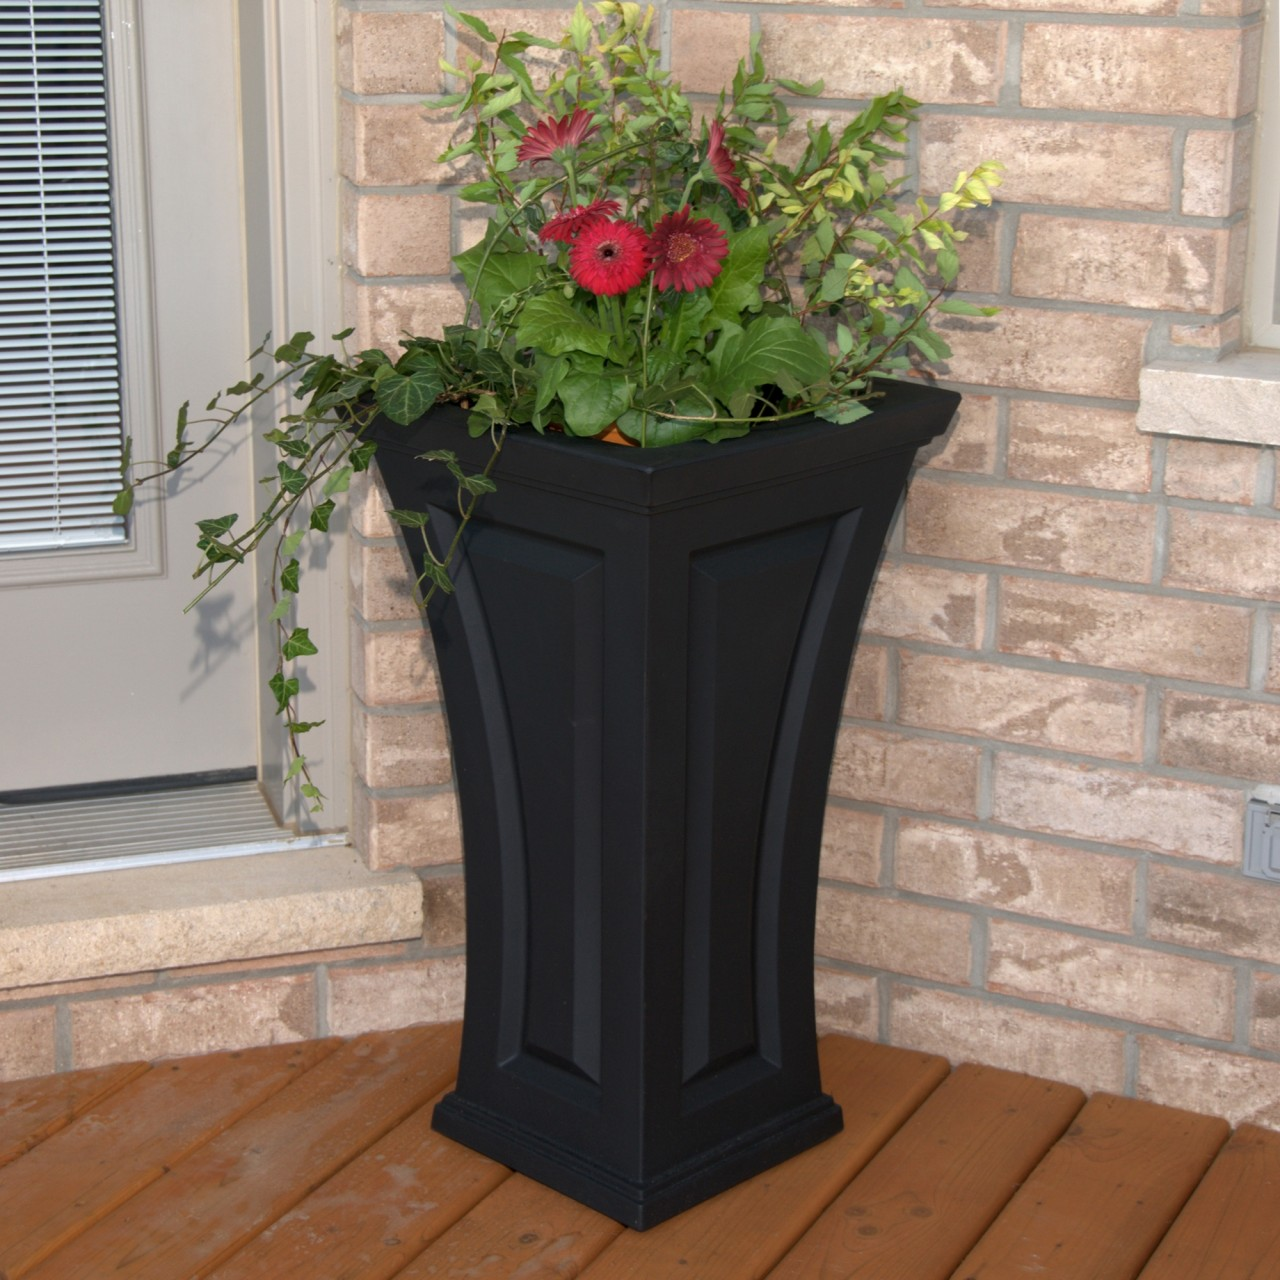 Tall outdoor planter ideas cambridge interior design ideas for Garden planter ideas